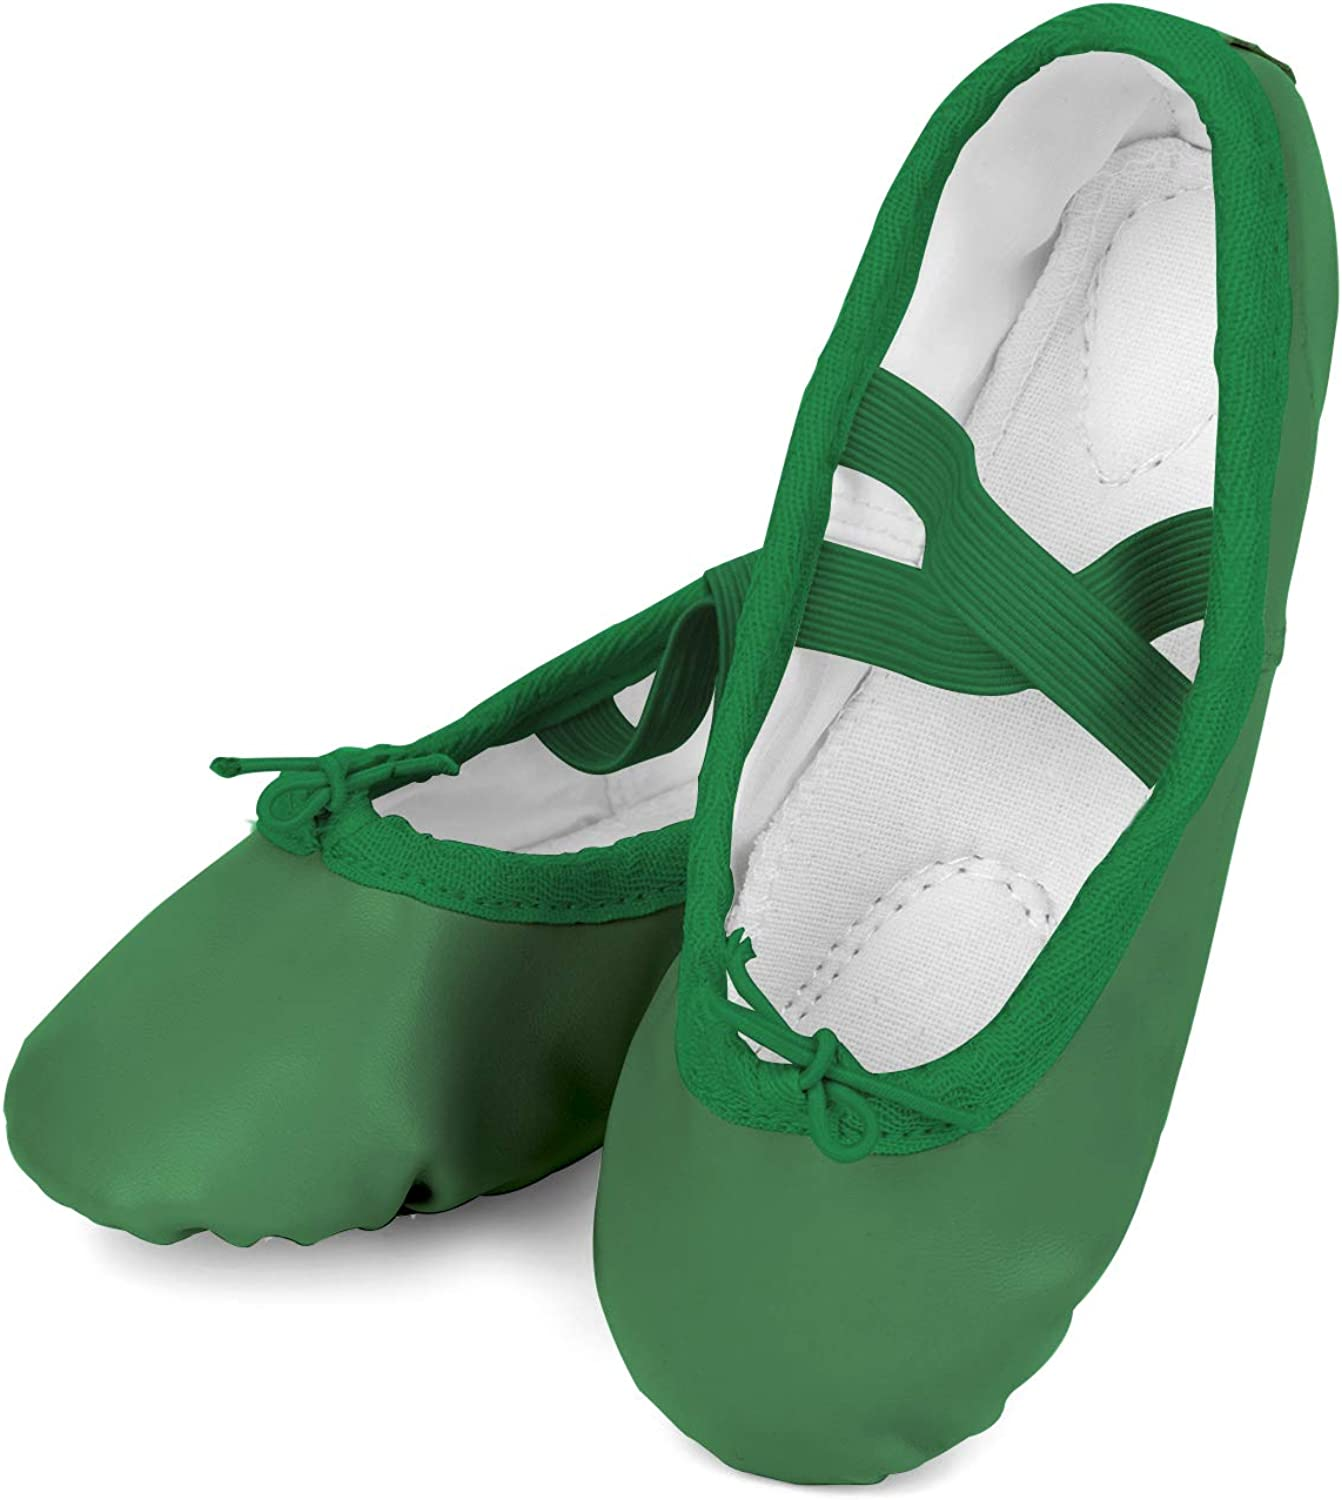 Toddler Girls Boys Ankle Strap Ballet Dance Shoes Athletic Ballet Slippers Green 10-10.5 Toddler